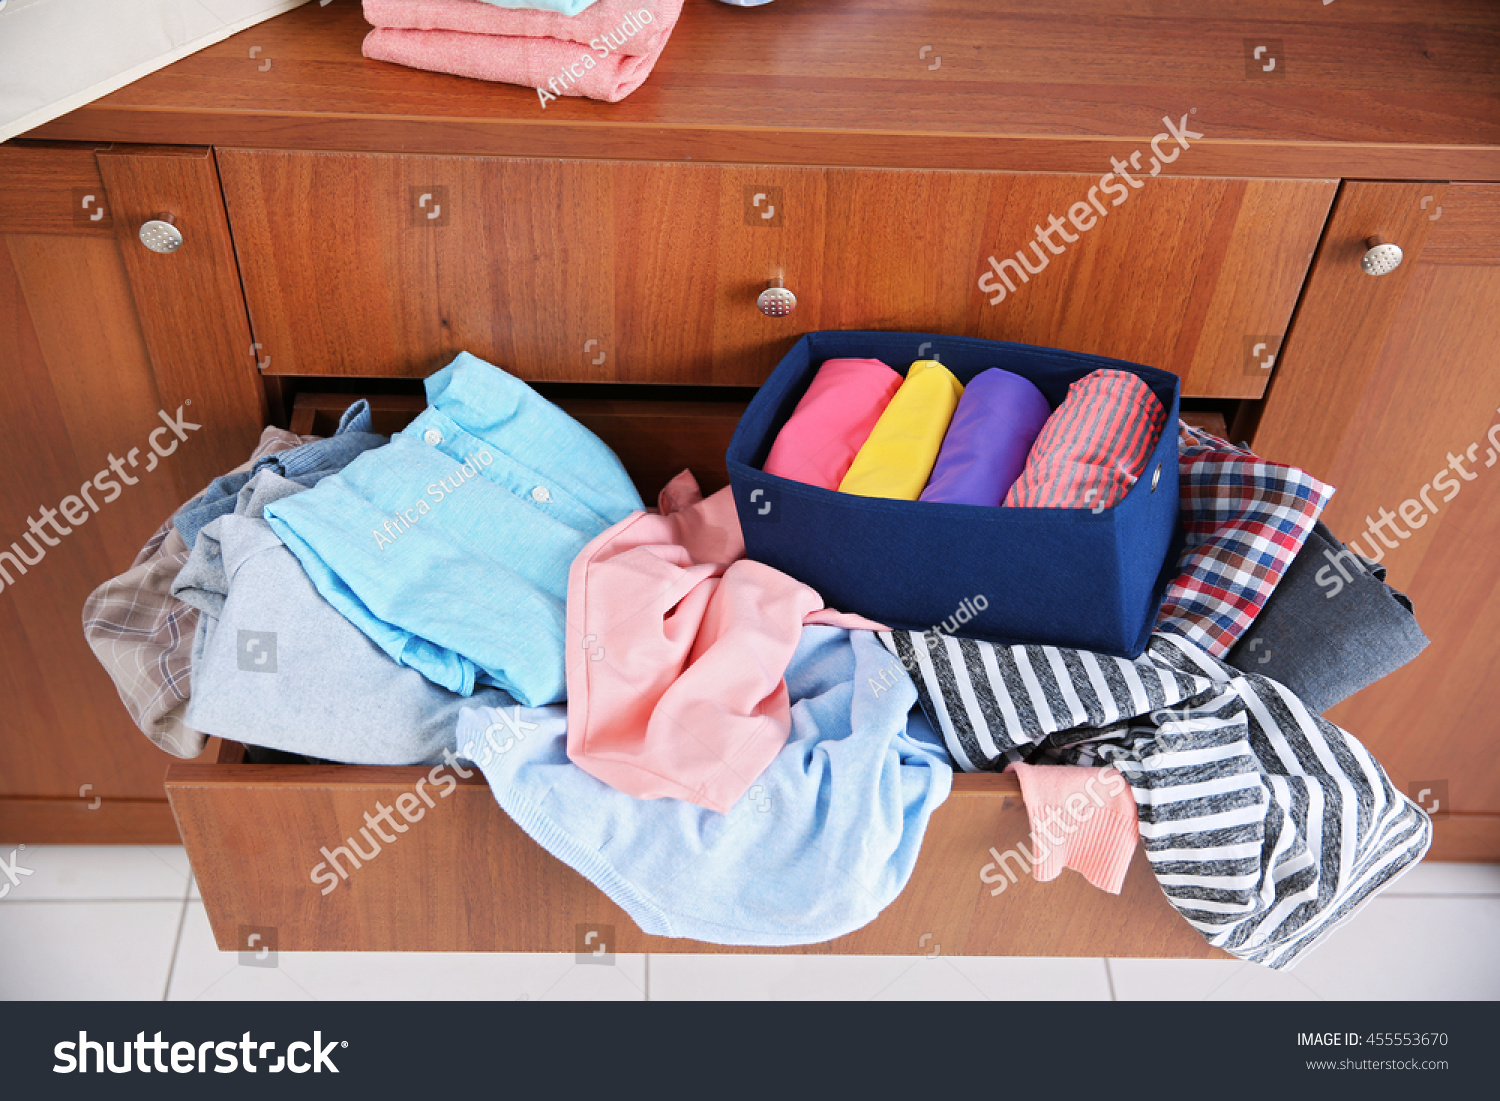 Amazing photo of Pile Of Clothes In Wooden Drawer Stock Photo 455553670 : Shutterstock with #A44827 color and 1500x1101 pixels